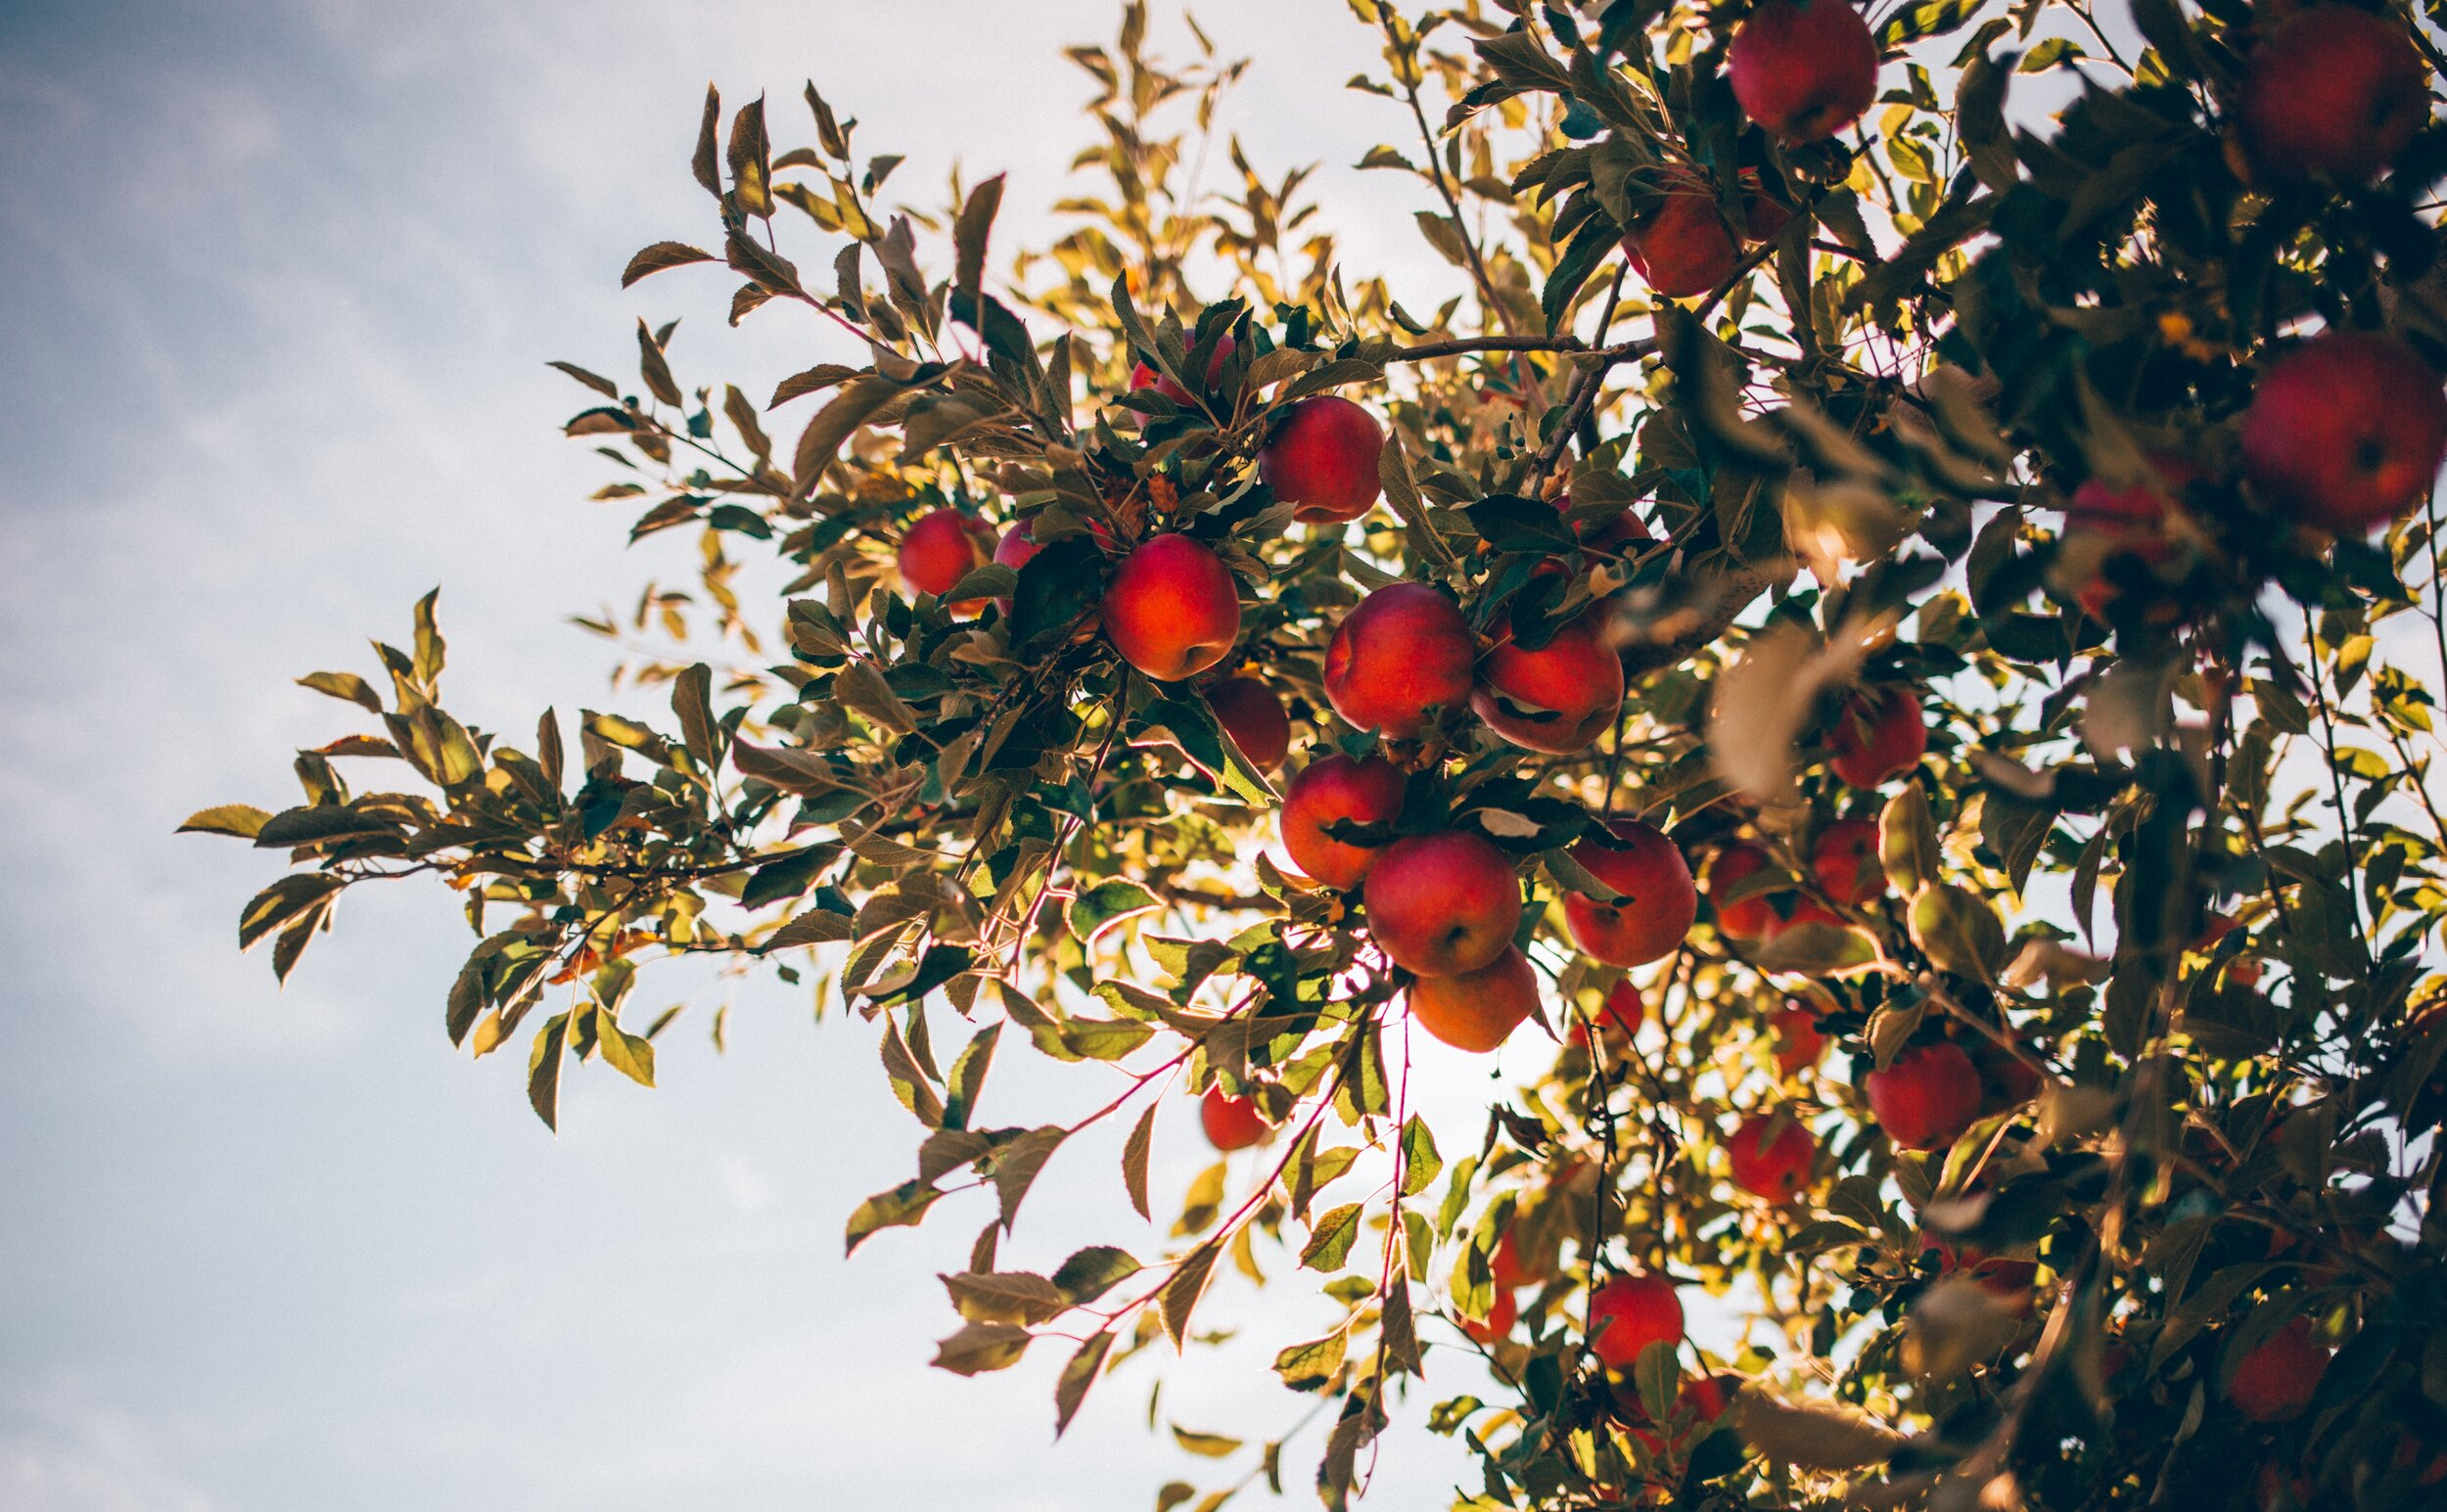 Apple Picking! - New Date: Sunday, Oct 20. Guta is organizing the New Amsterdam Family Outing Club's first adventure out of the city on October 20. Stay tuned for more details.